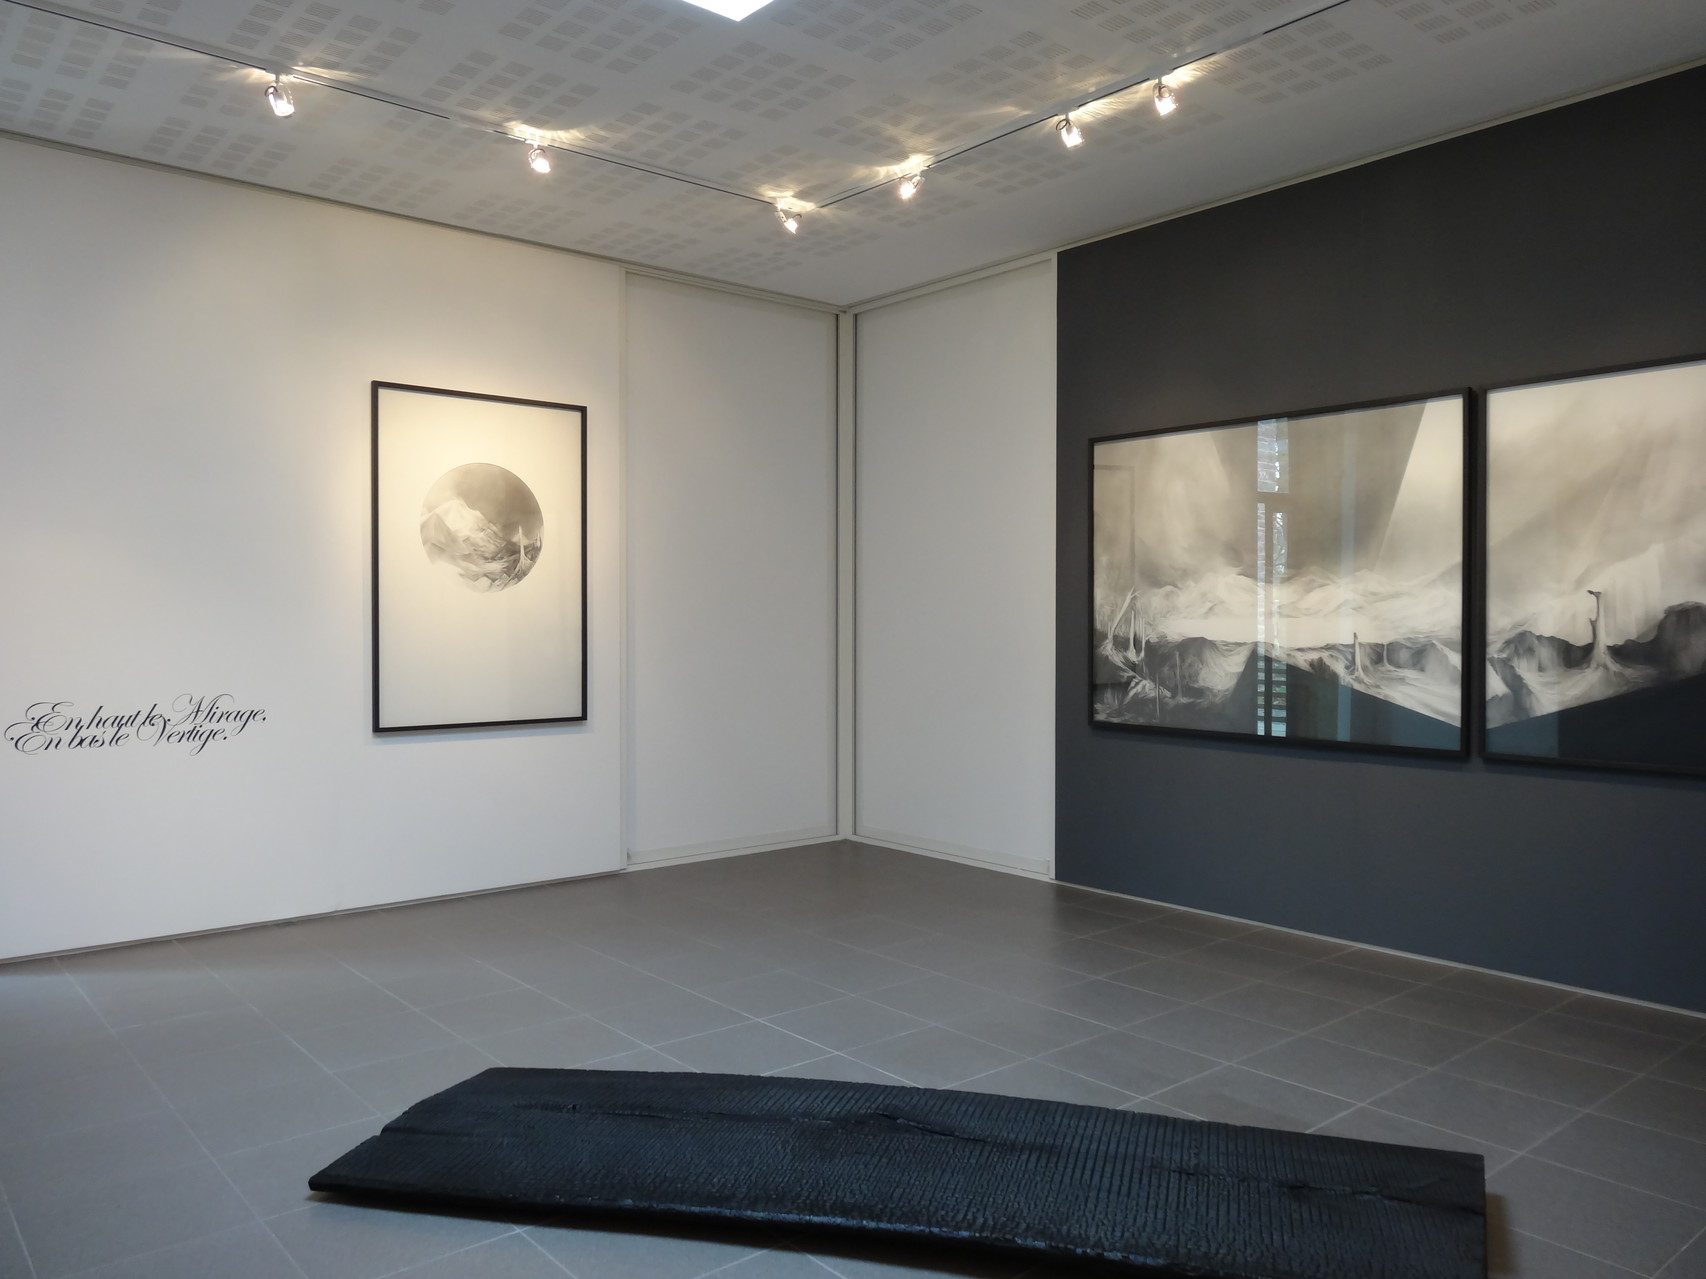 Vues de l'exposition Angélique Lecaille, After Dawn, 2014.